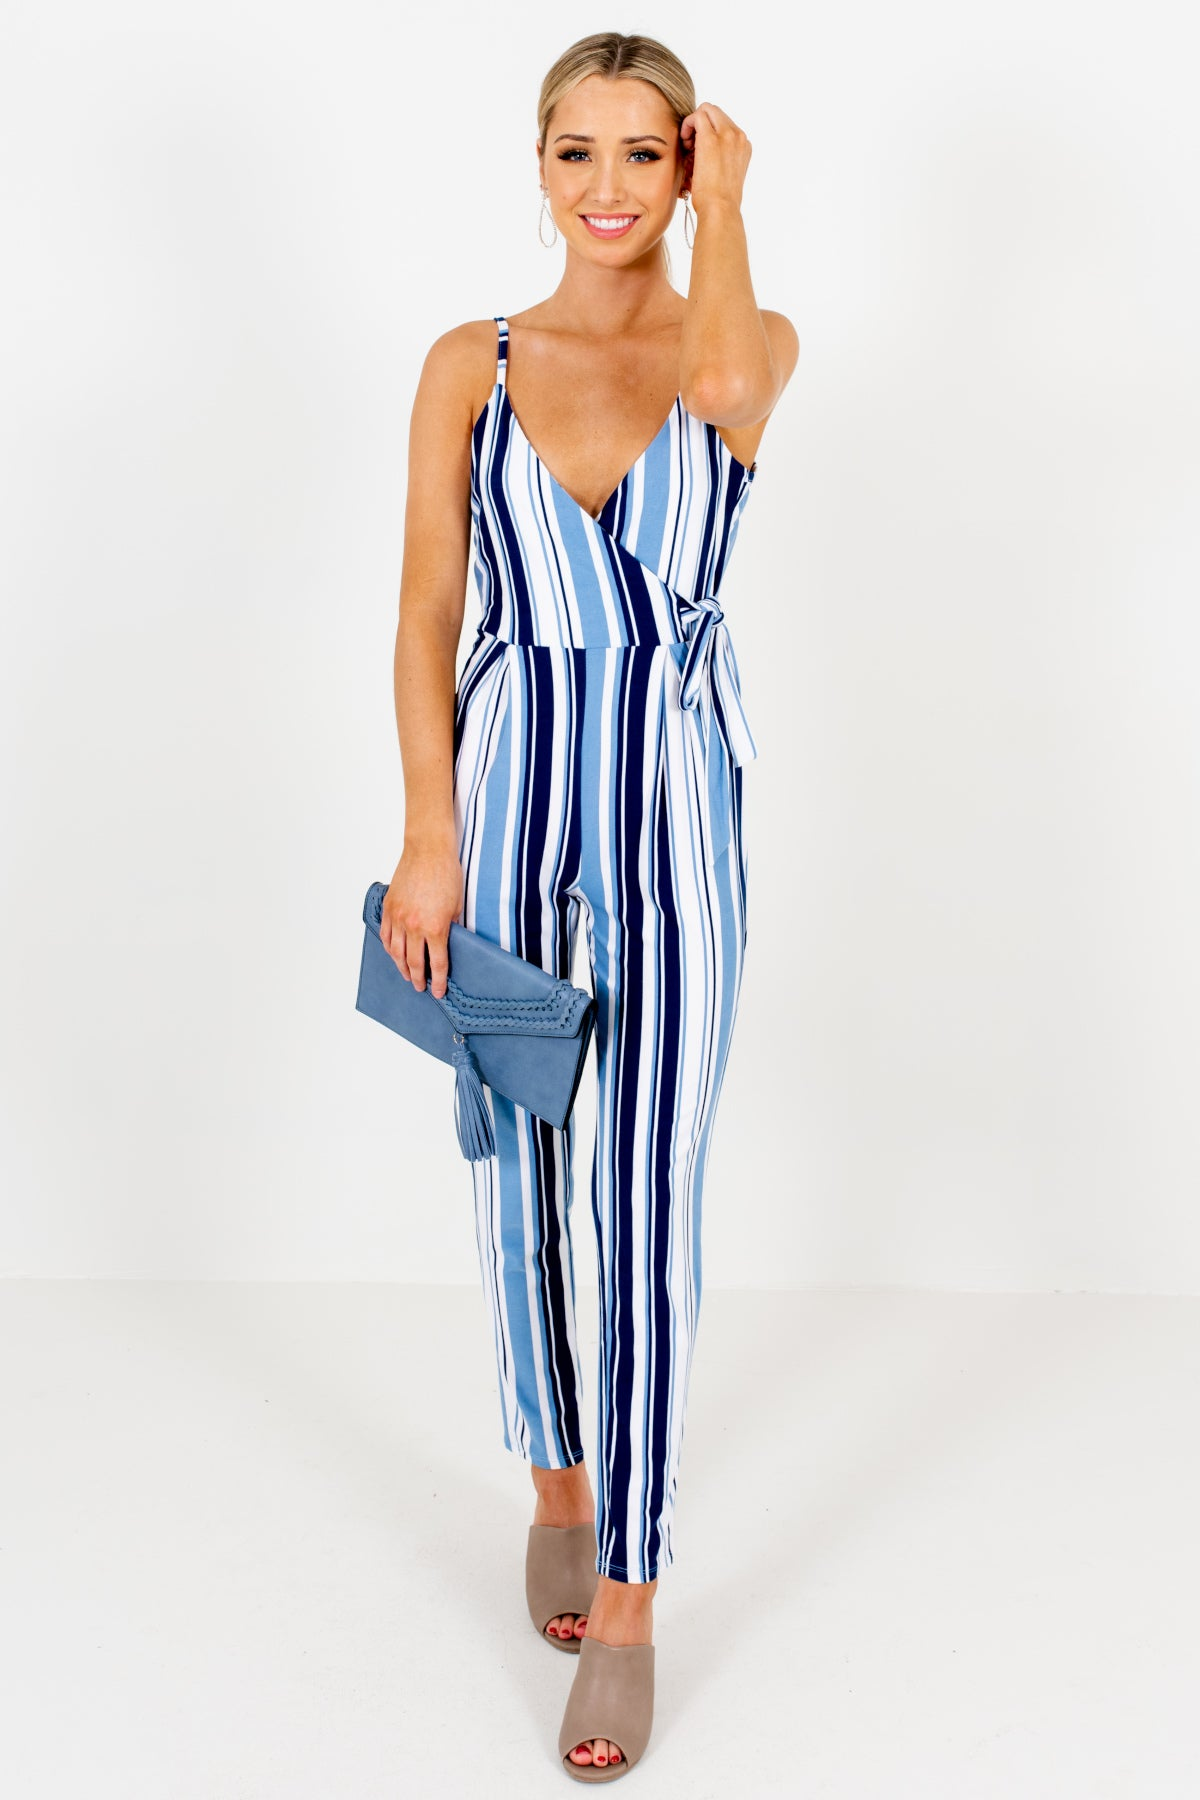 autumn shoes quality products buying now Nautical Vibes Blue Striped Jumpsuit | Boutique Jumpsuits